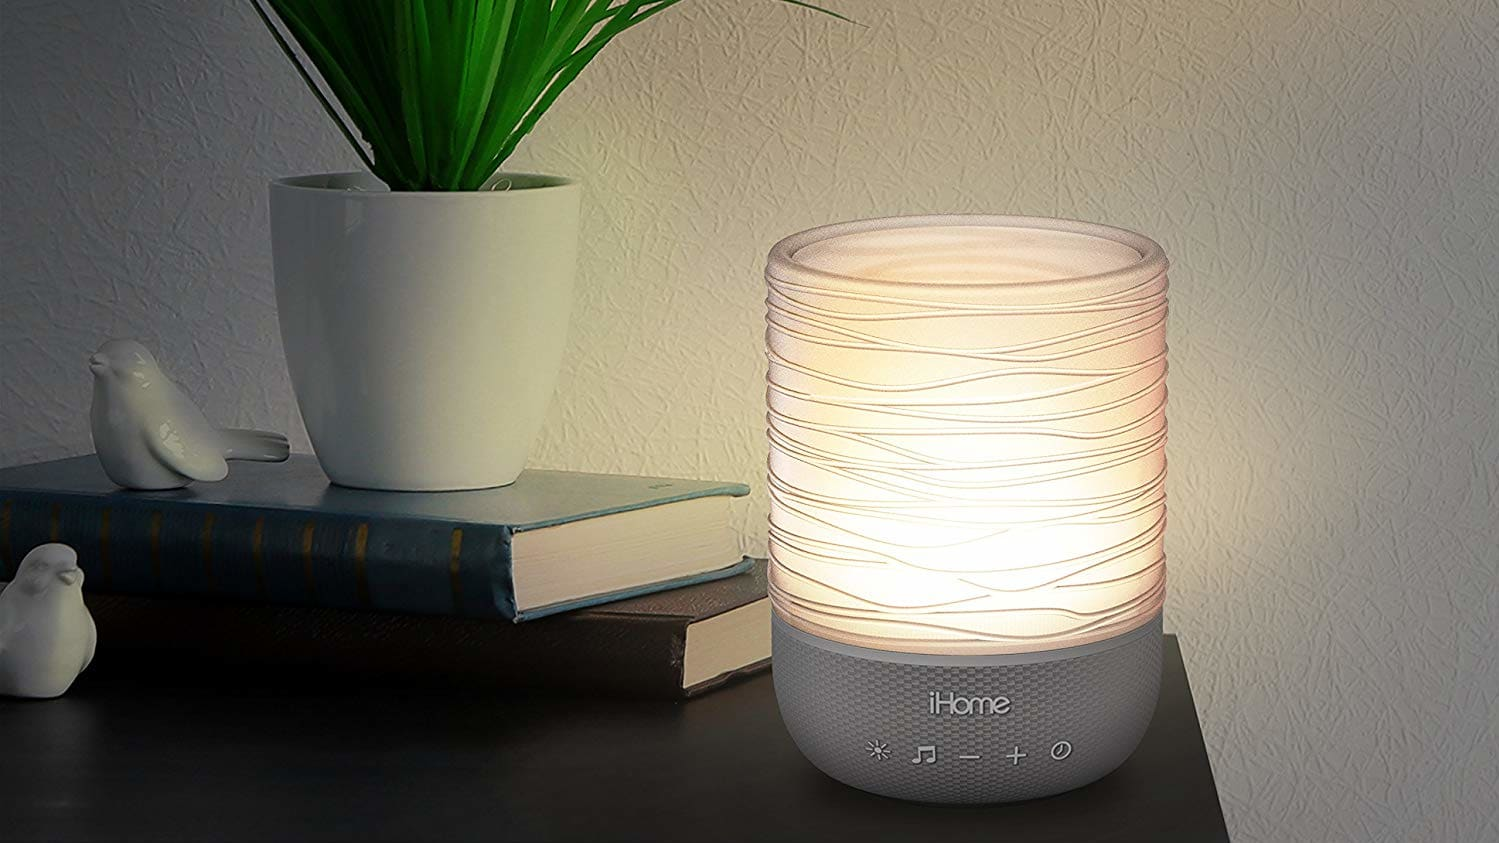 This White Noise Machine Is Also a Candle